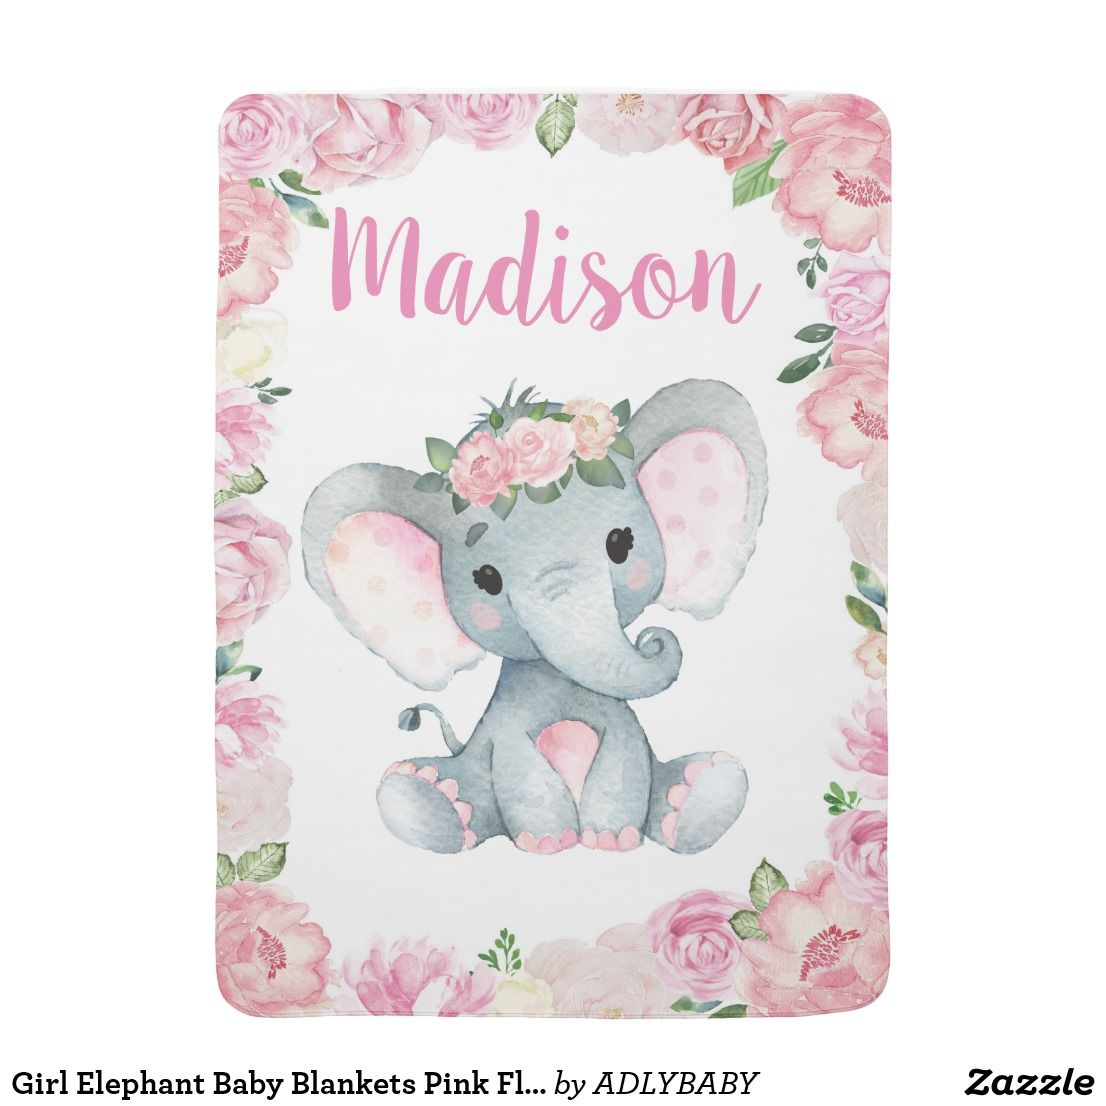 Girl Elephant Baby Blankets Pink Floral Name Elephant Baby Blanket Baby Elephant Personalized Baby Blankets